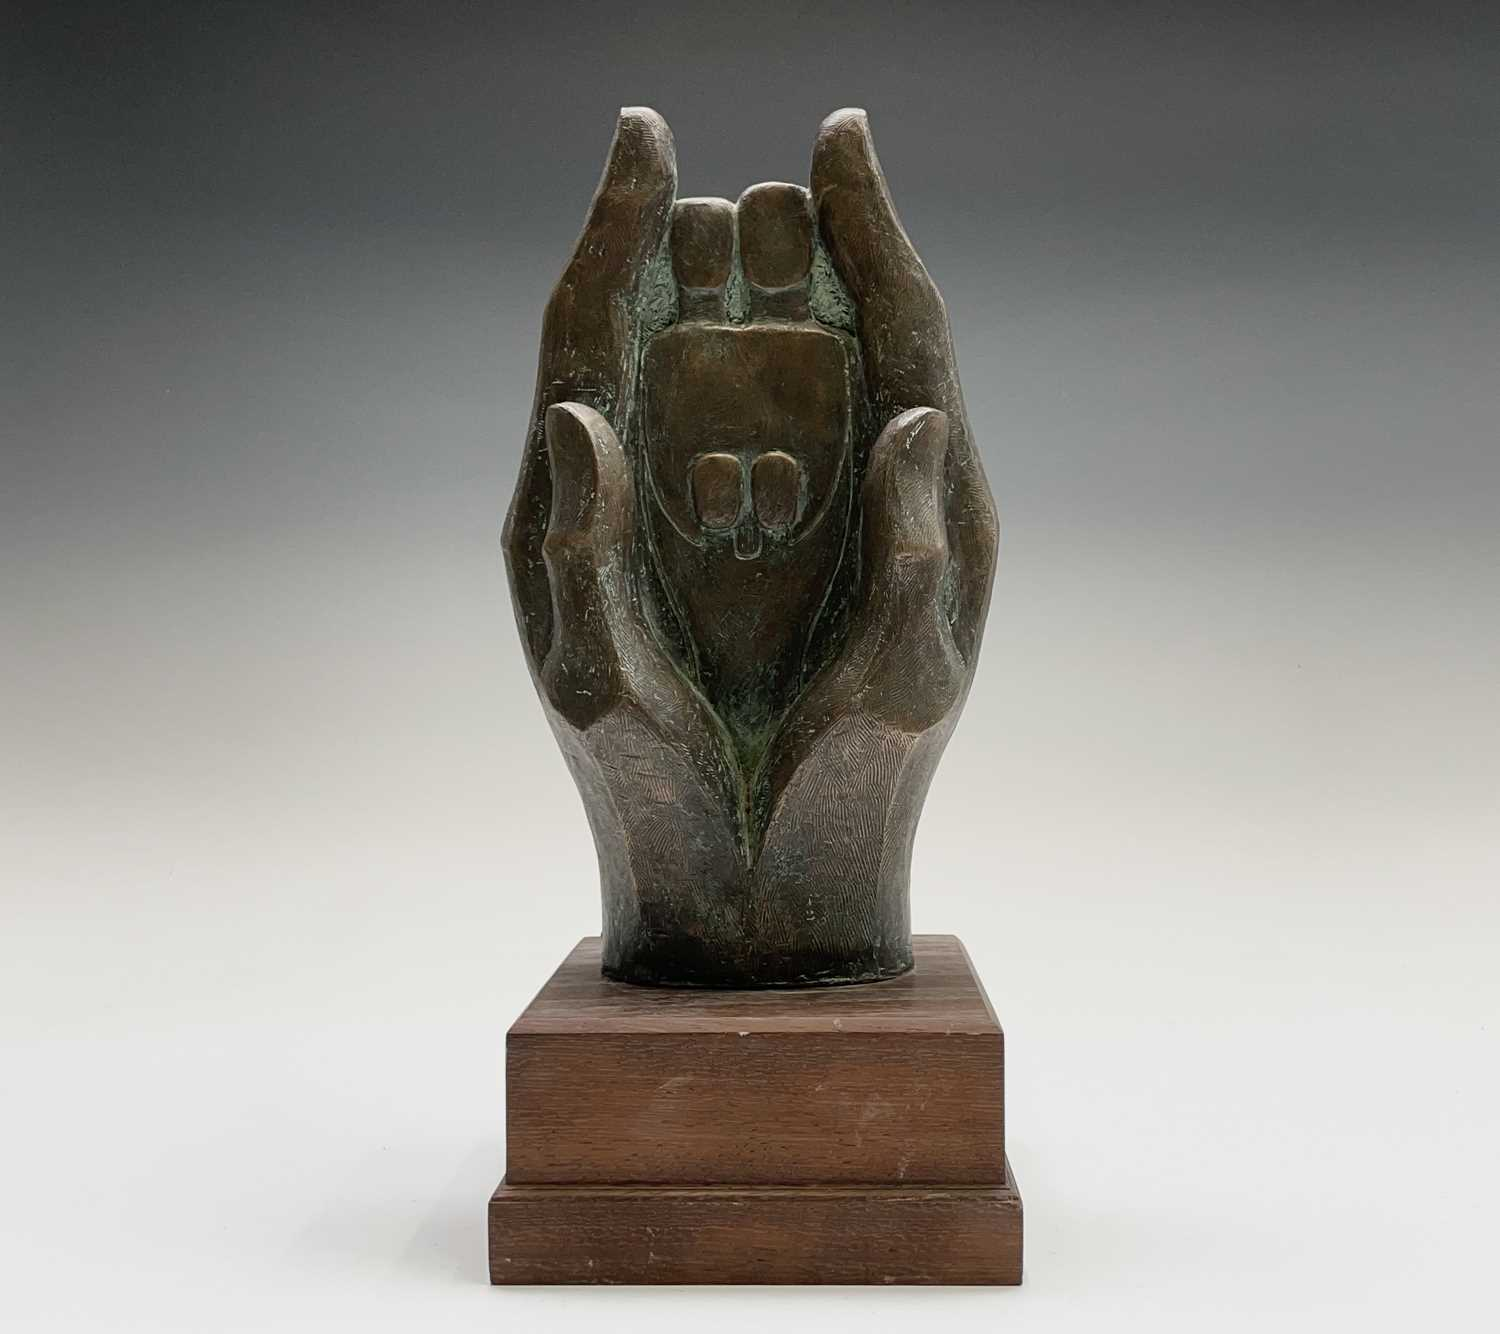 Alec WILES (1924)Hands Cold cast bronze sculpture Signed Height 34cm including wooden base